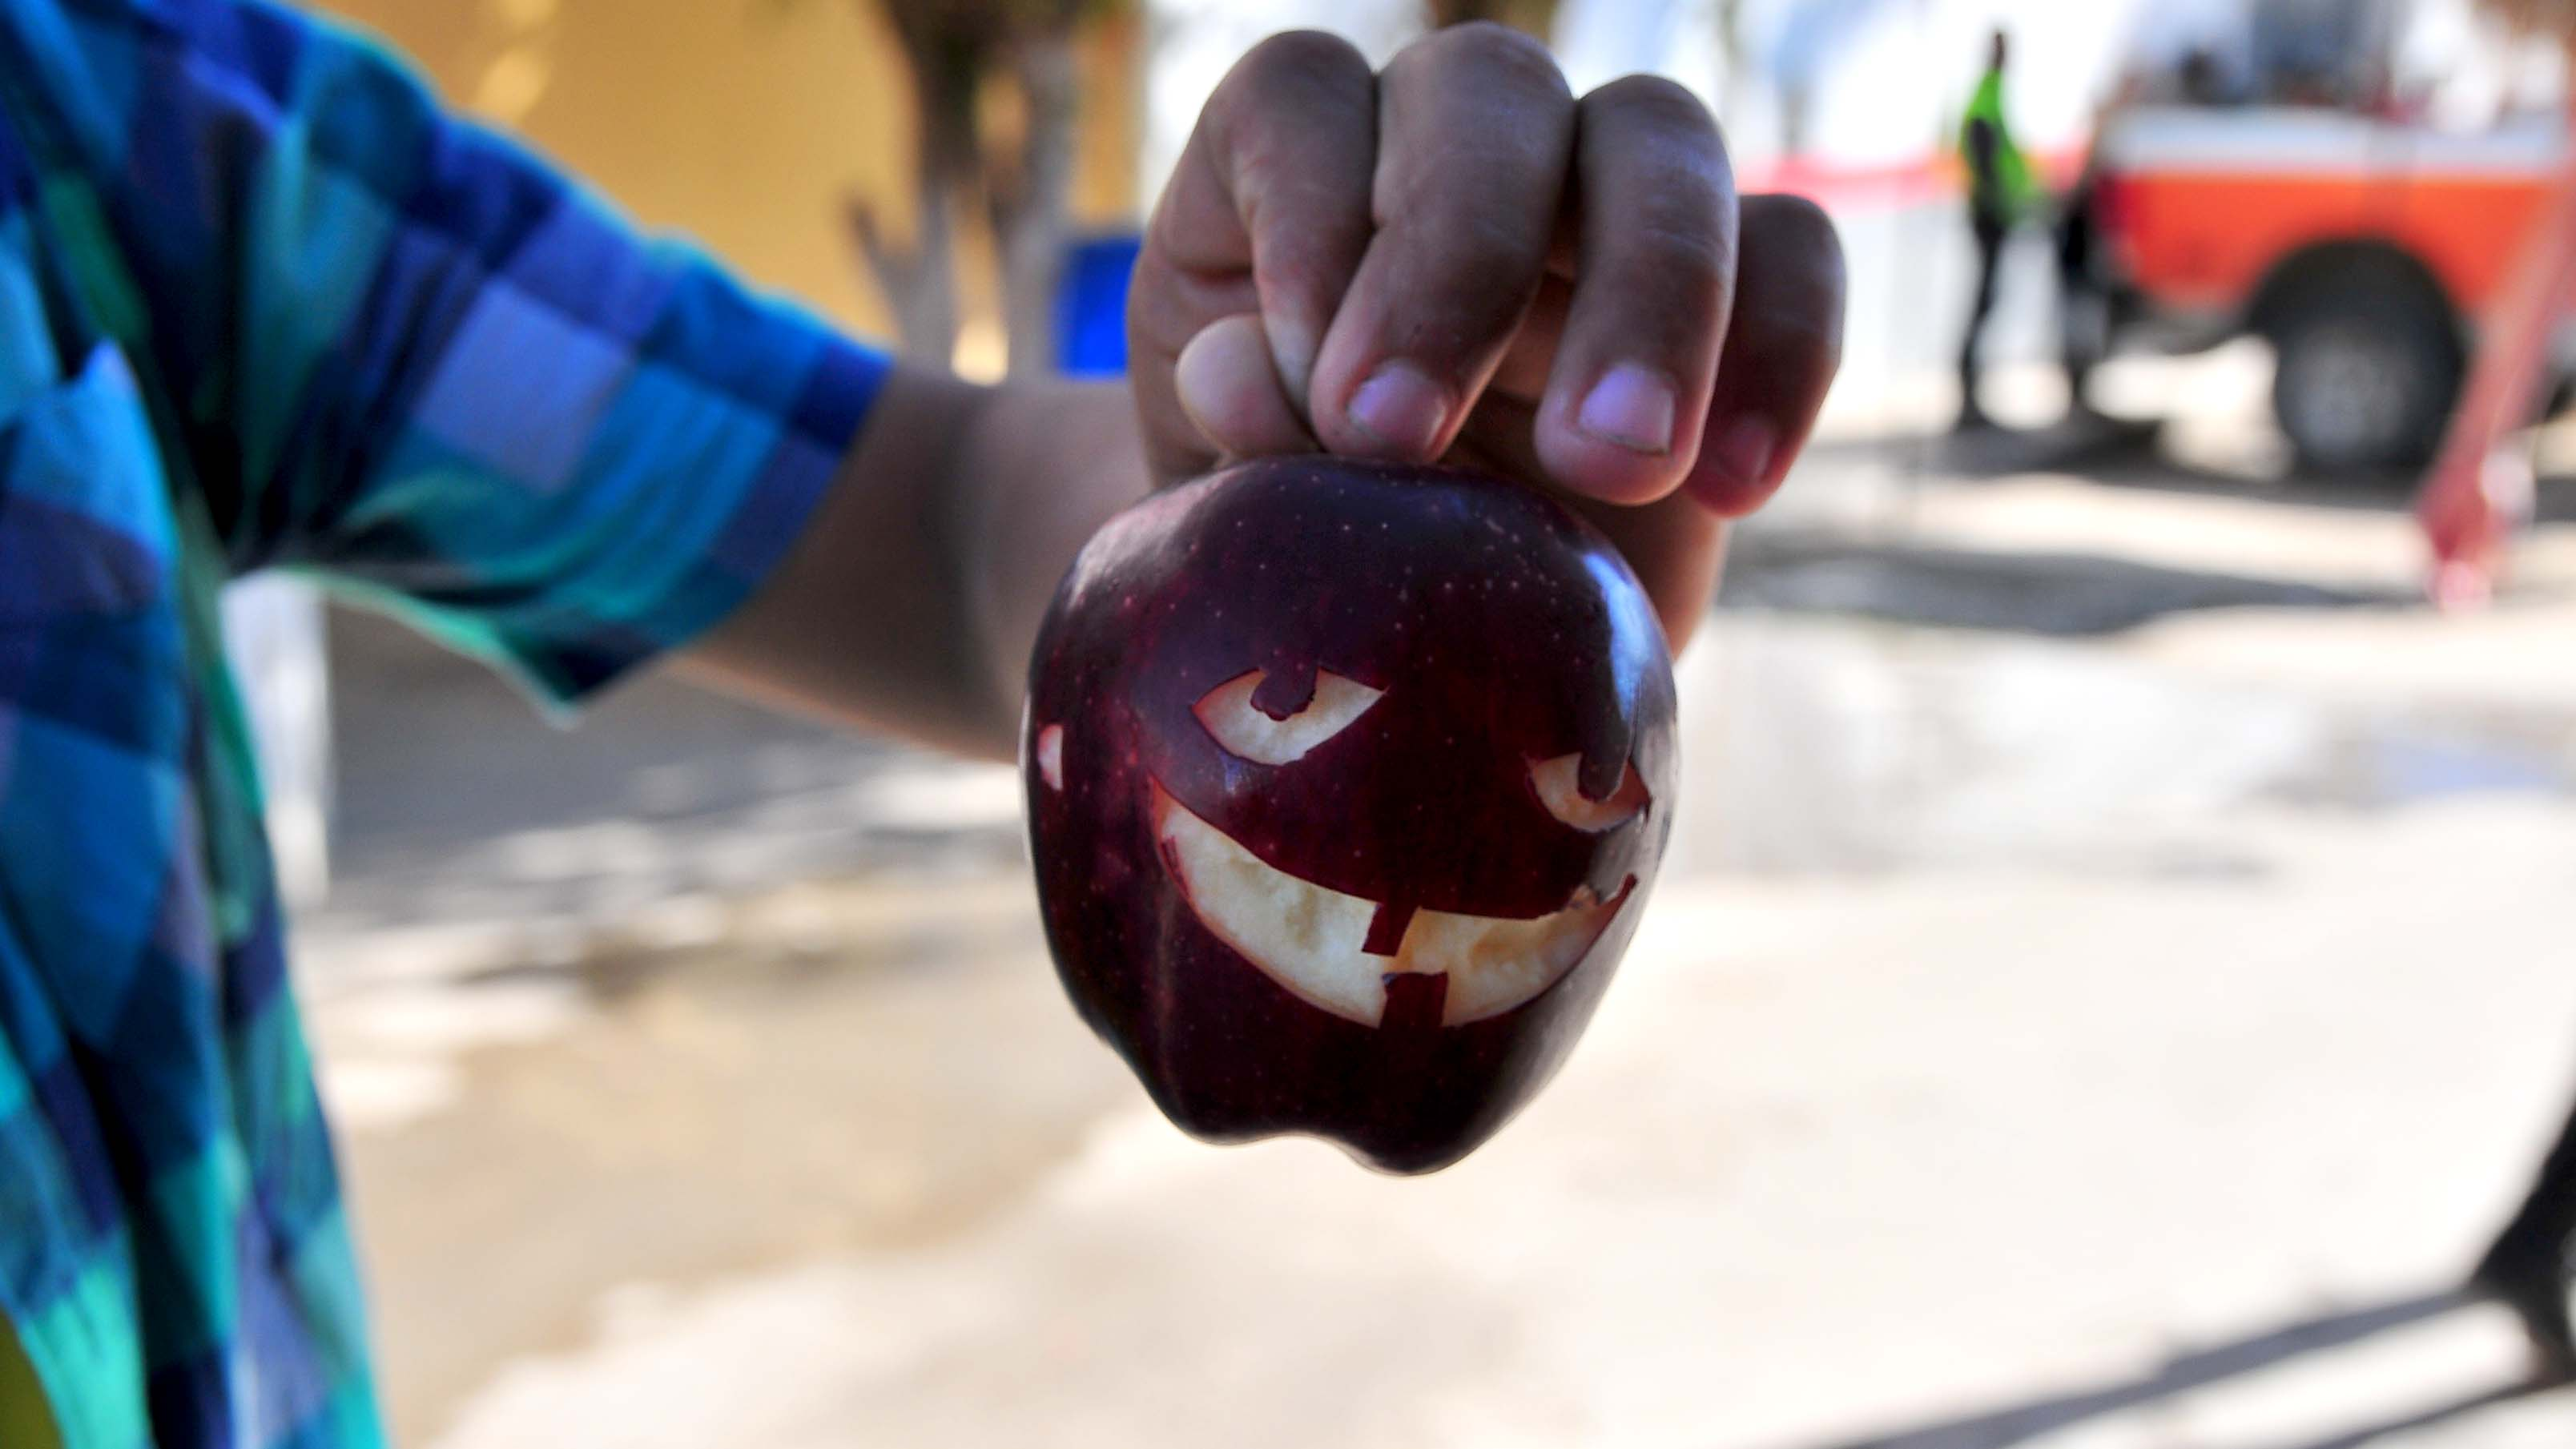 A young migrant shows an apple that he creatively carved.